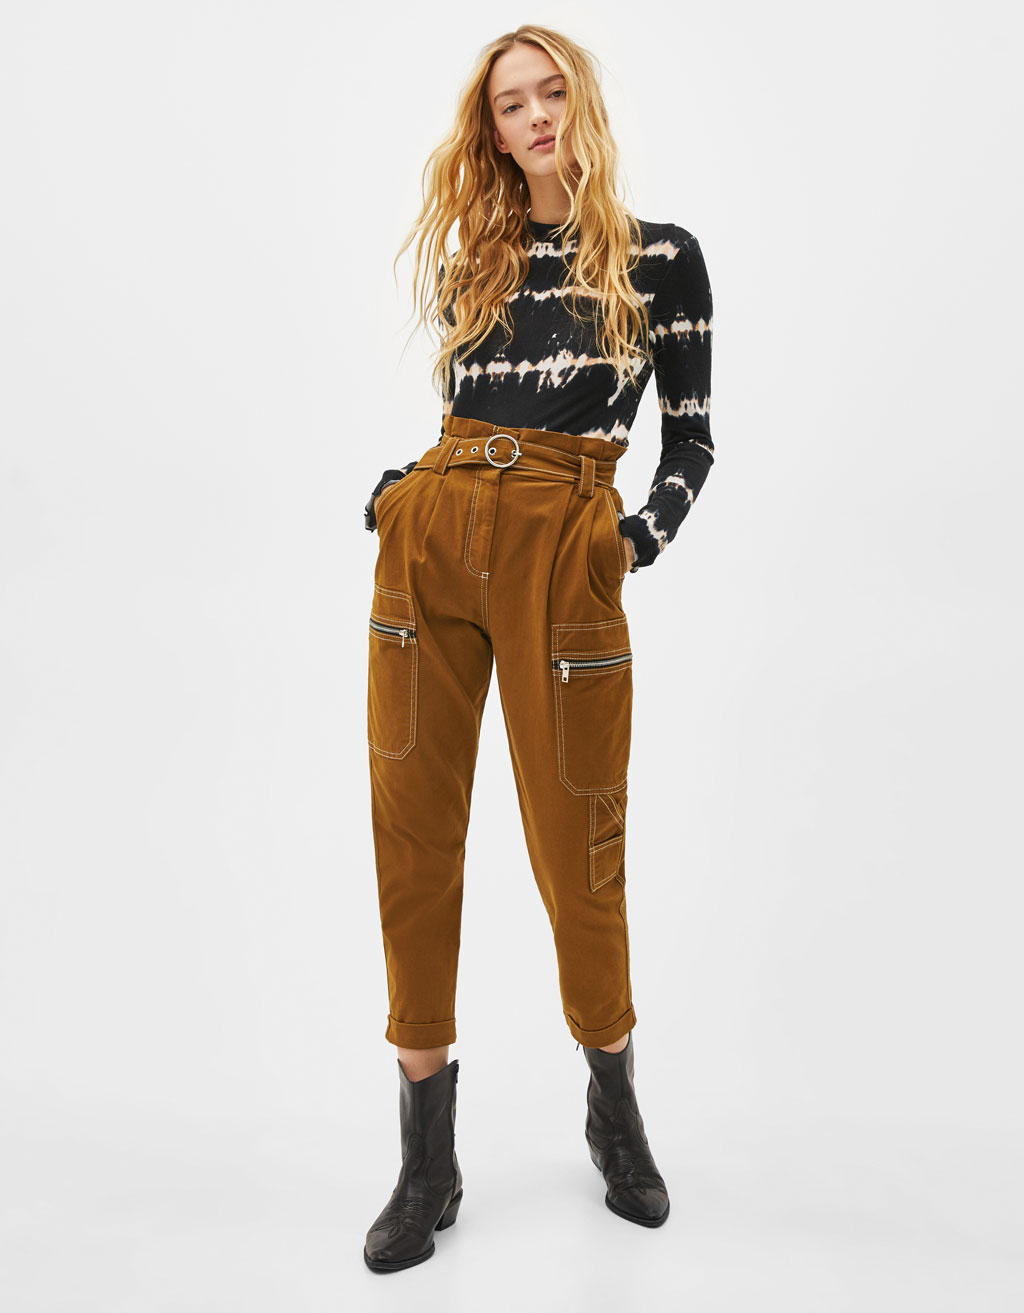 01577ef9e8ad7 Women's Trousers - Spring Summer 2019 | Bershka